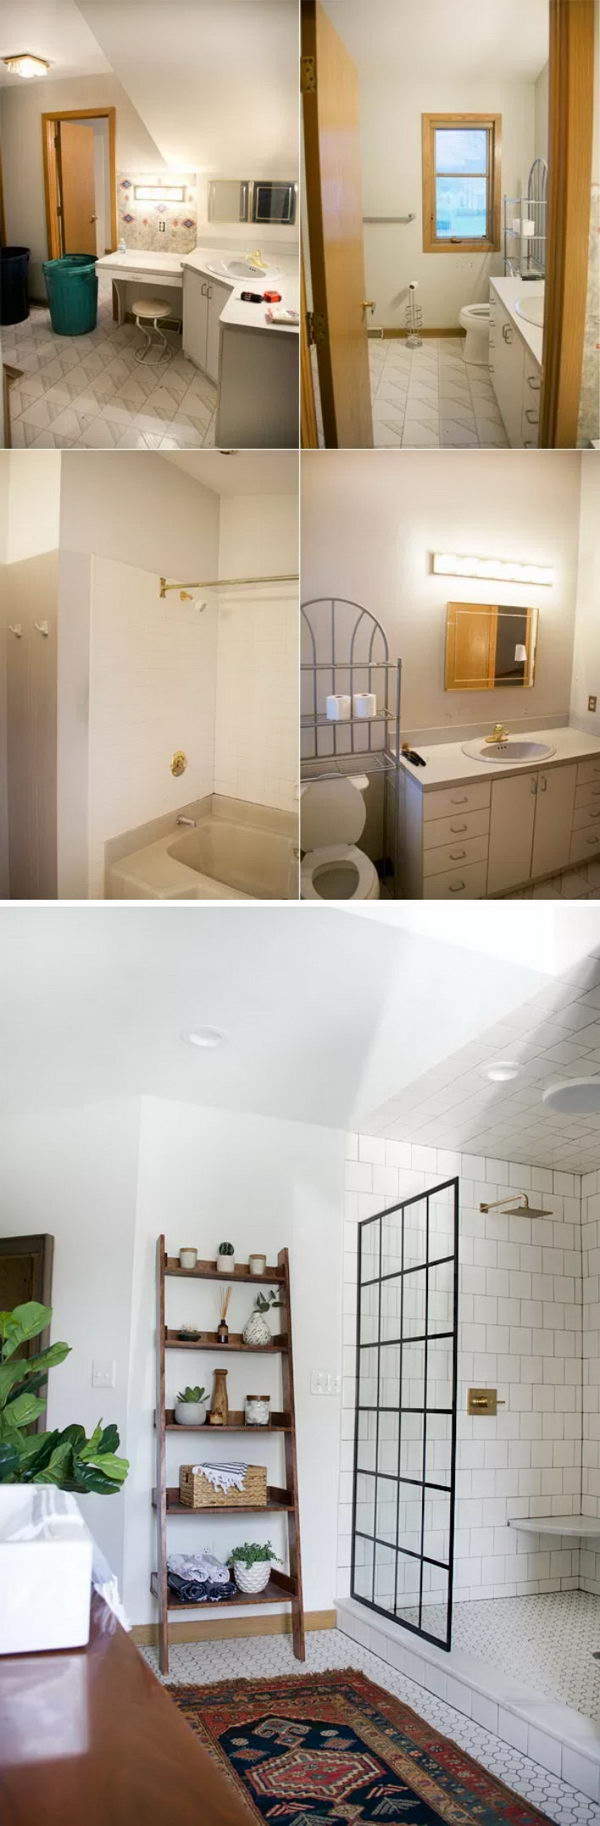 Modern Vintage Bathroom Reveal.